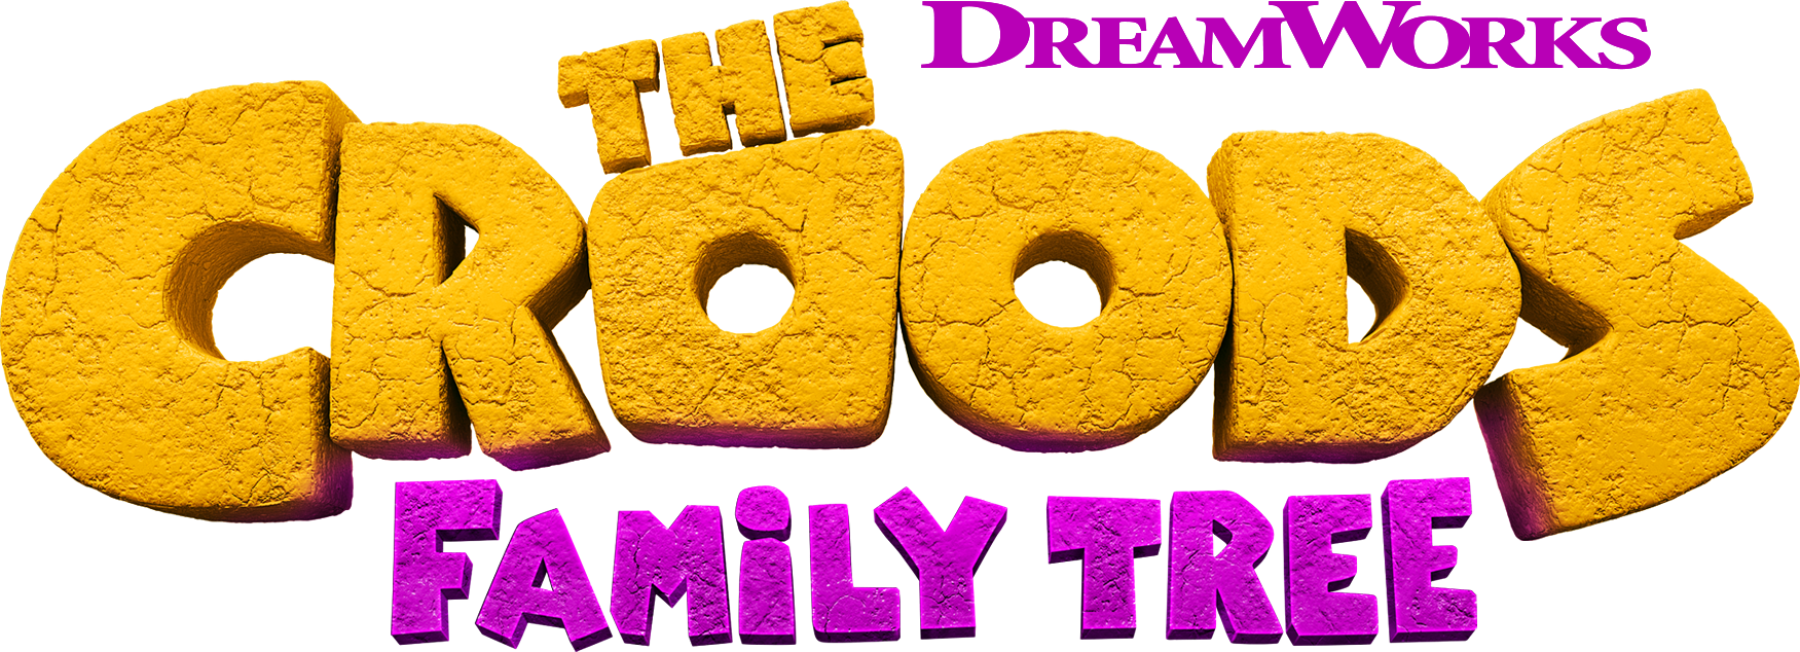 The Croods Family Tree